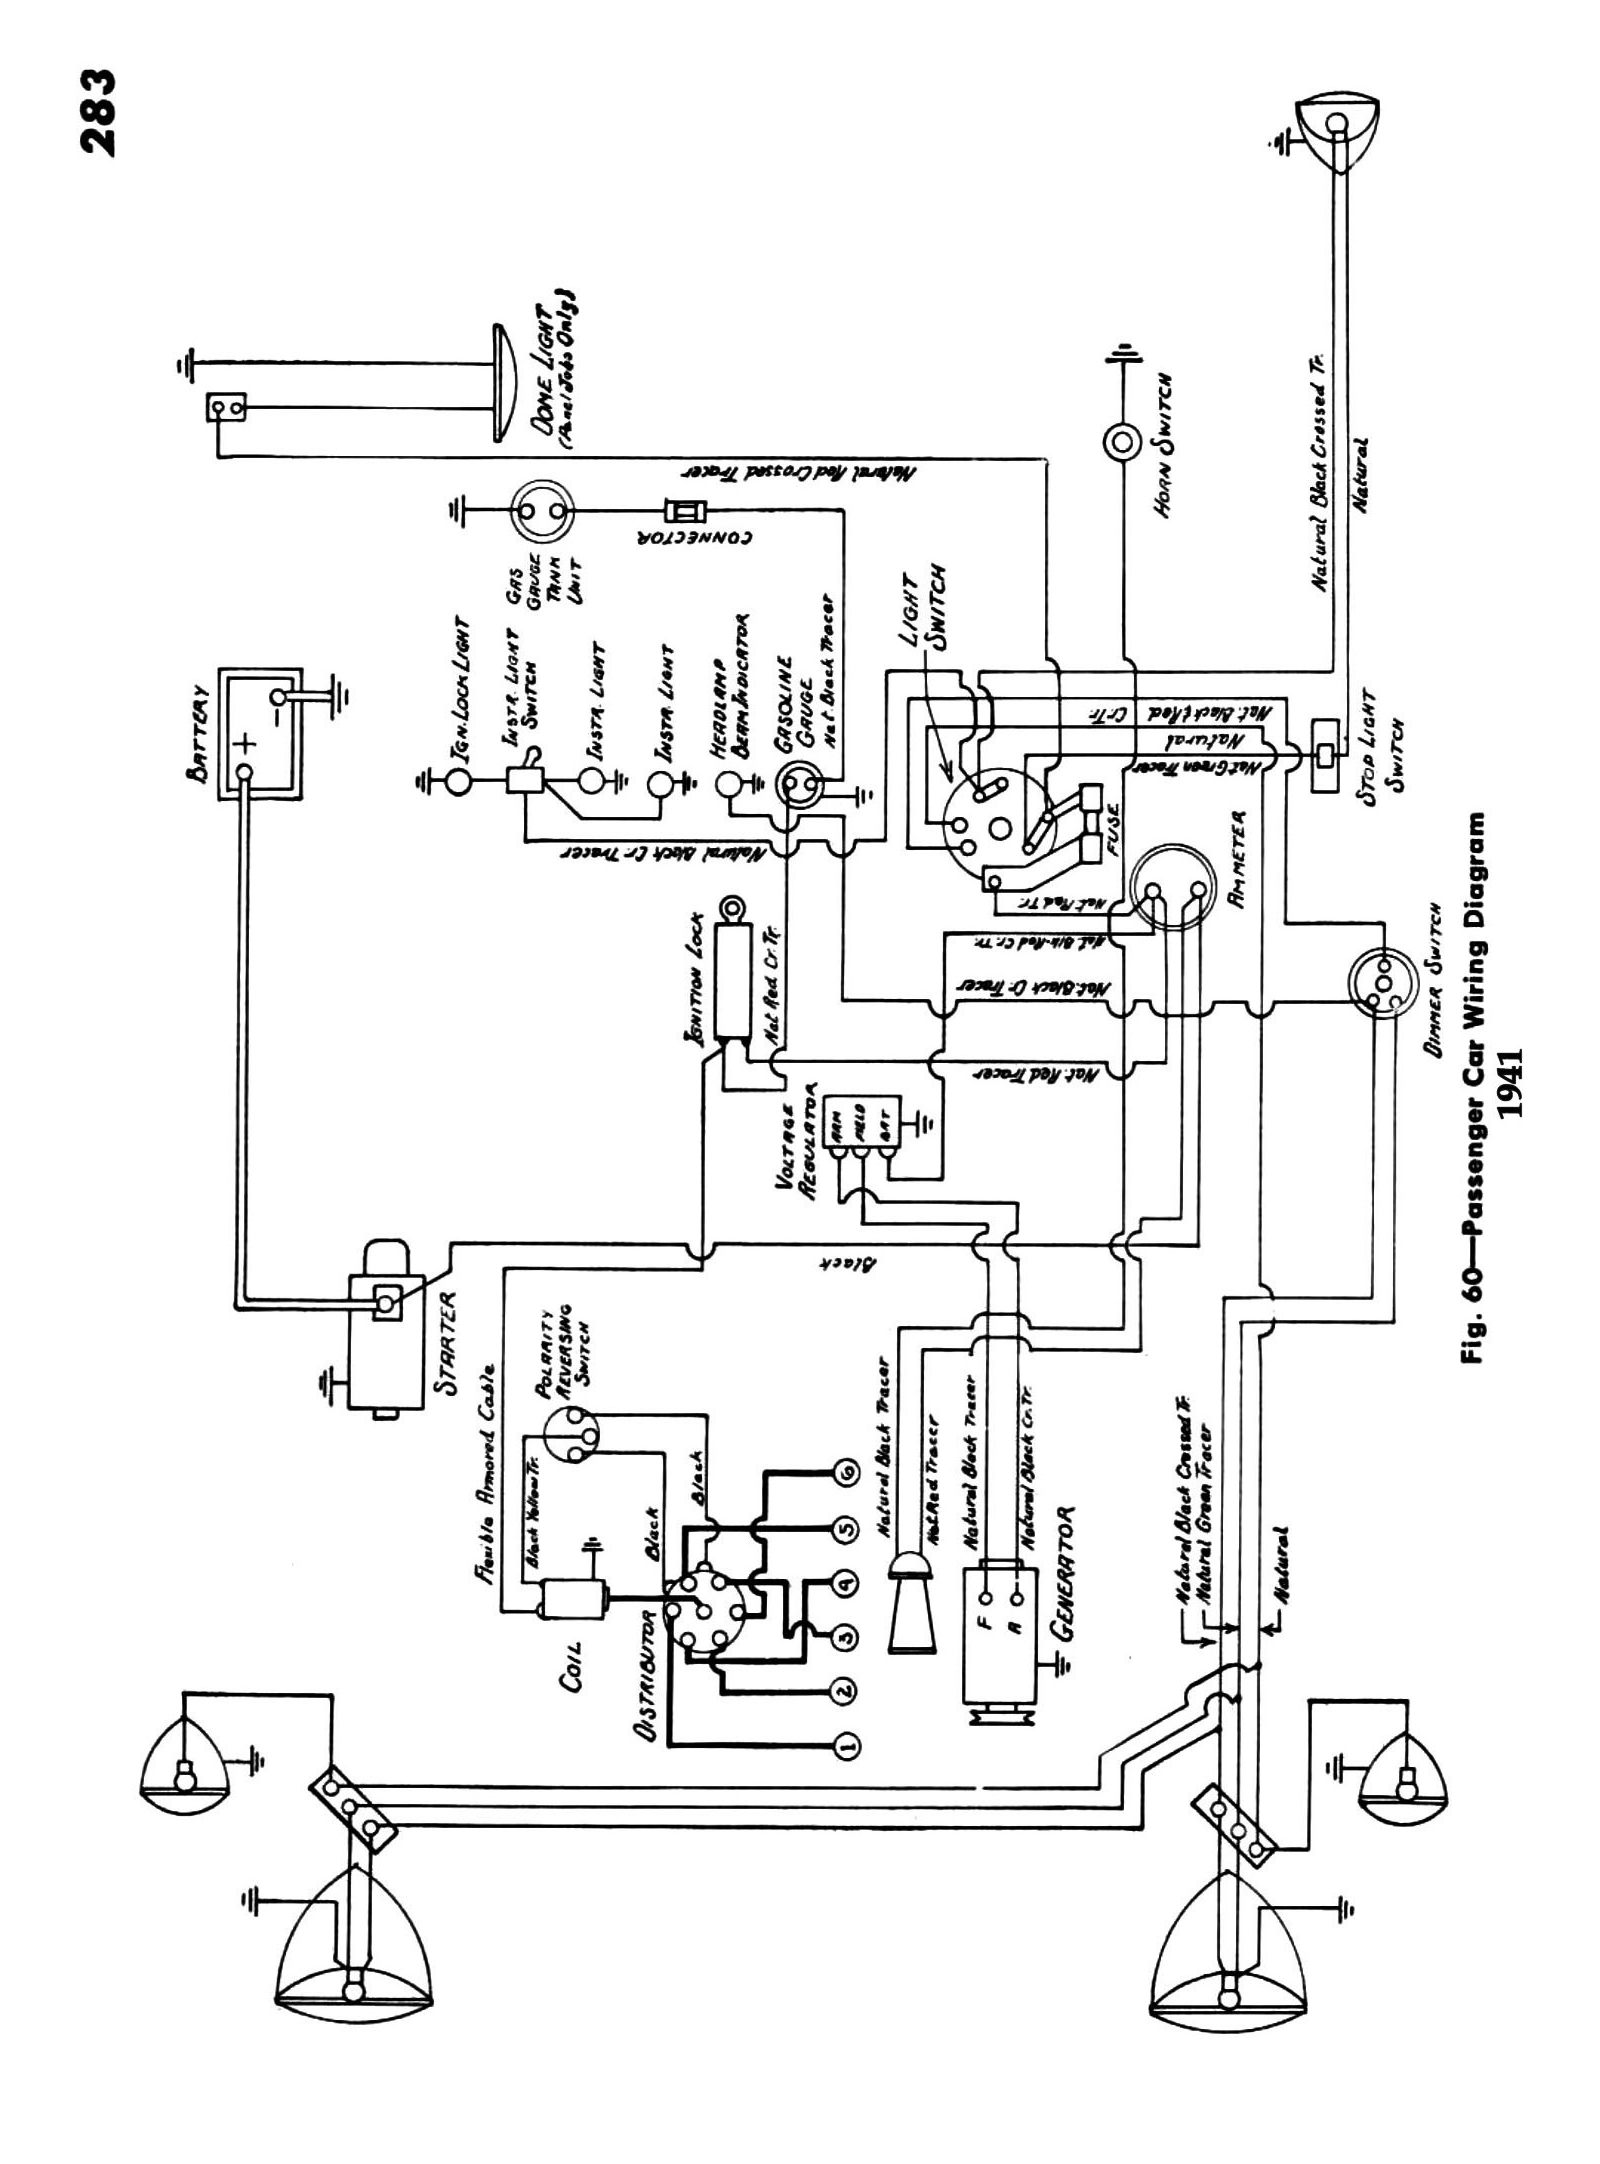 chevy wiring diagrams 93 Chevy S10 Fuse Box Diagram 2000 Chevy S10 Fuse Box Diagram